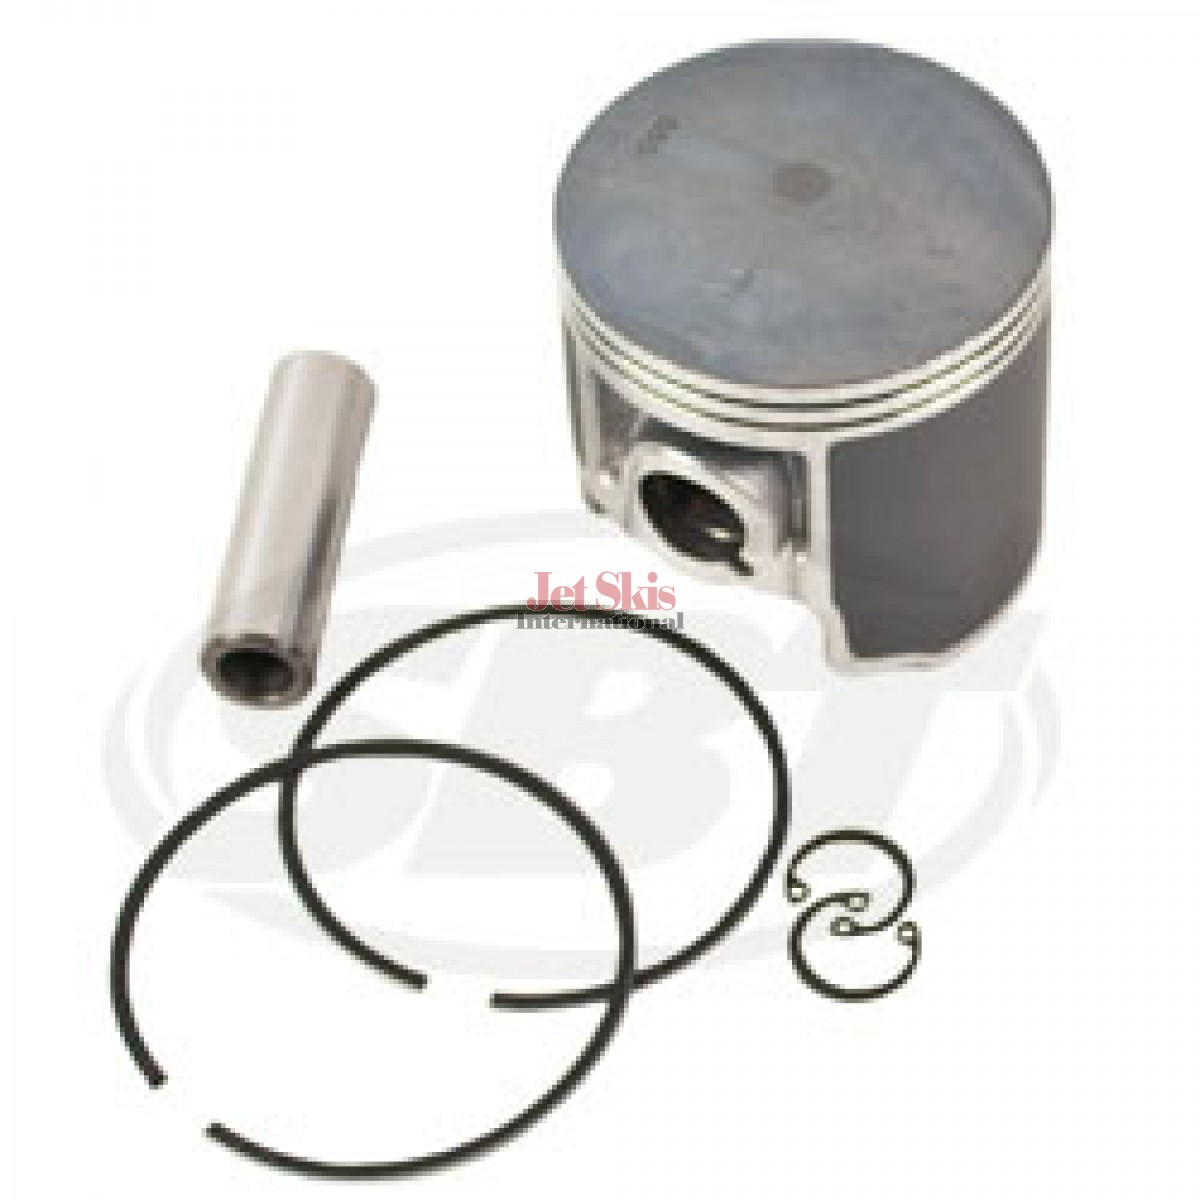 Yamaha Oem 61x 11631 02 93 Piston Ring Set 700 1100 Blaster Waverunner Fuel Filter More Views